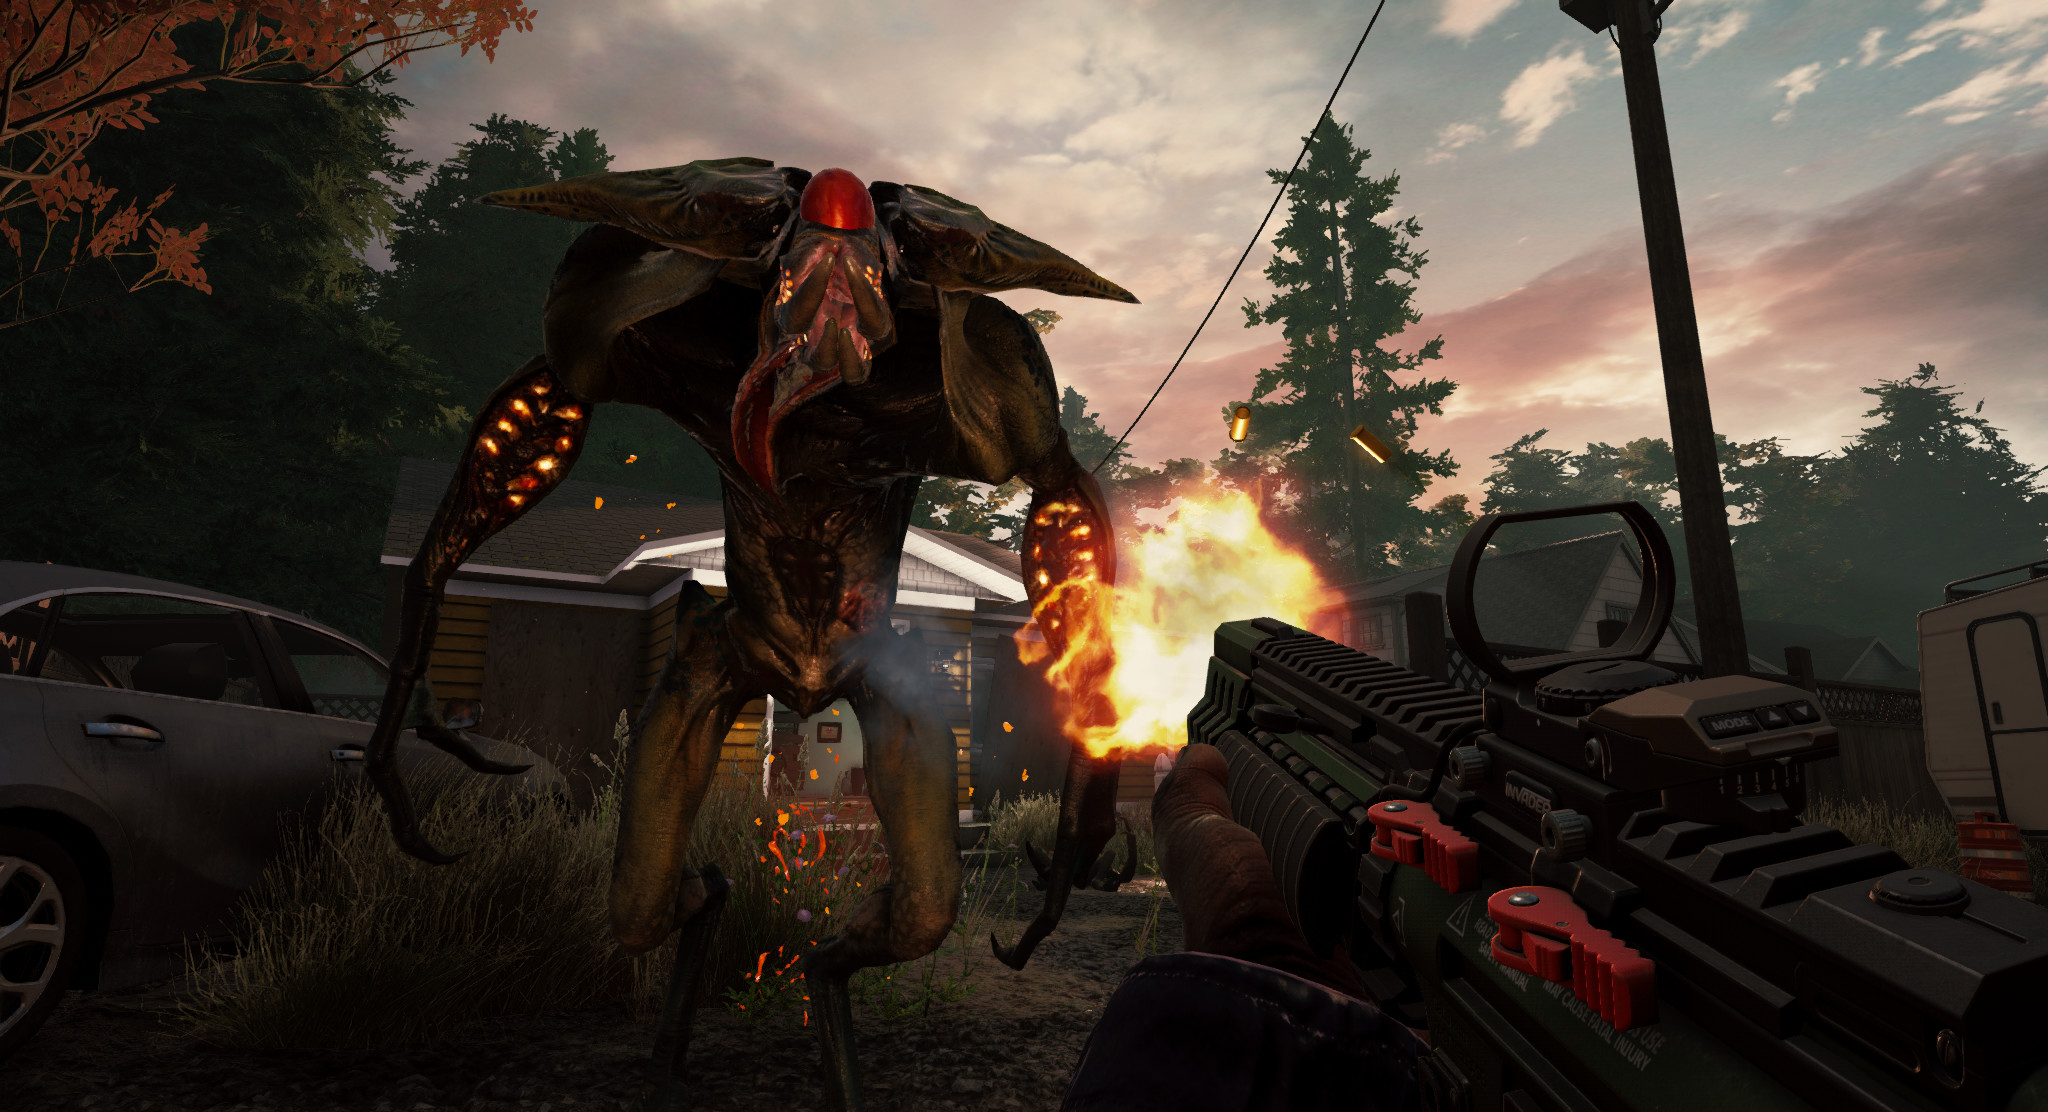 Earthfall invading consoles and PC soon